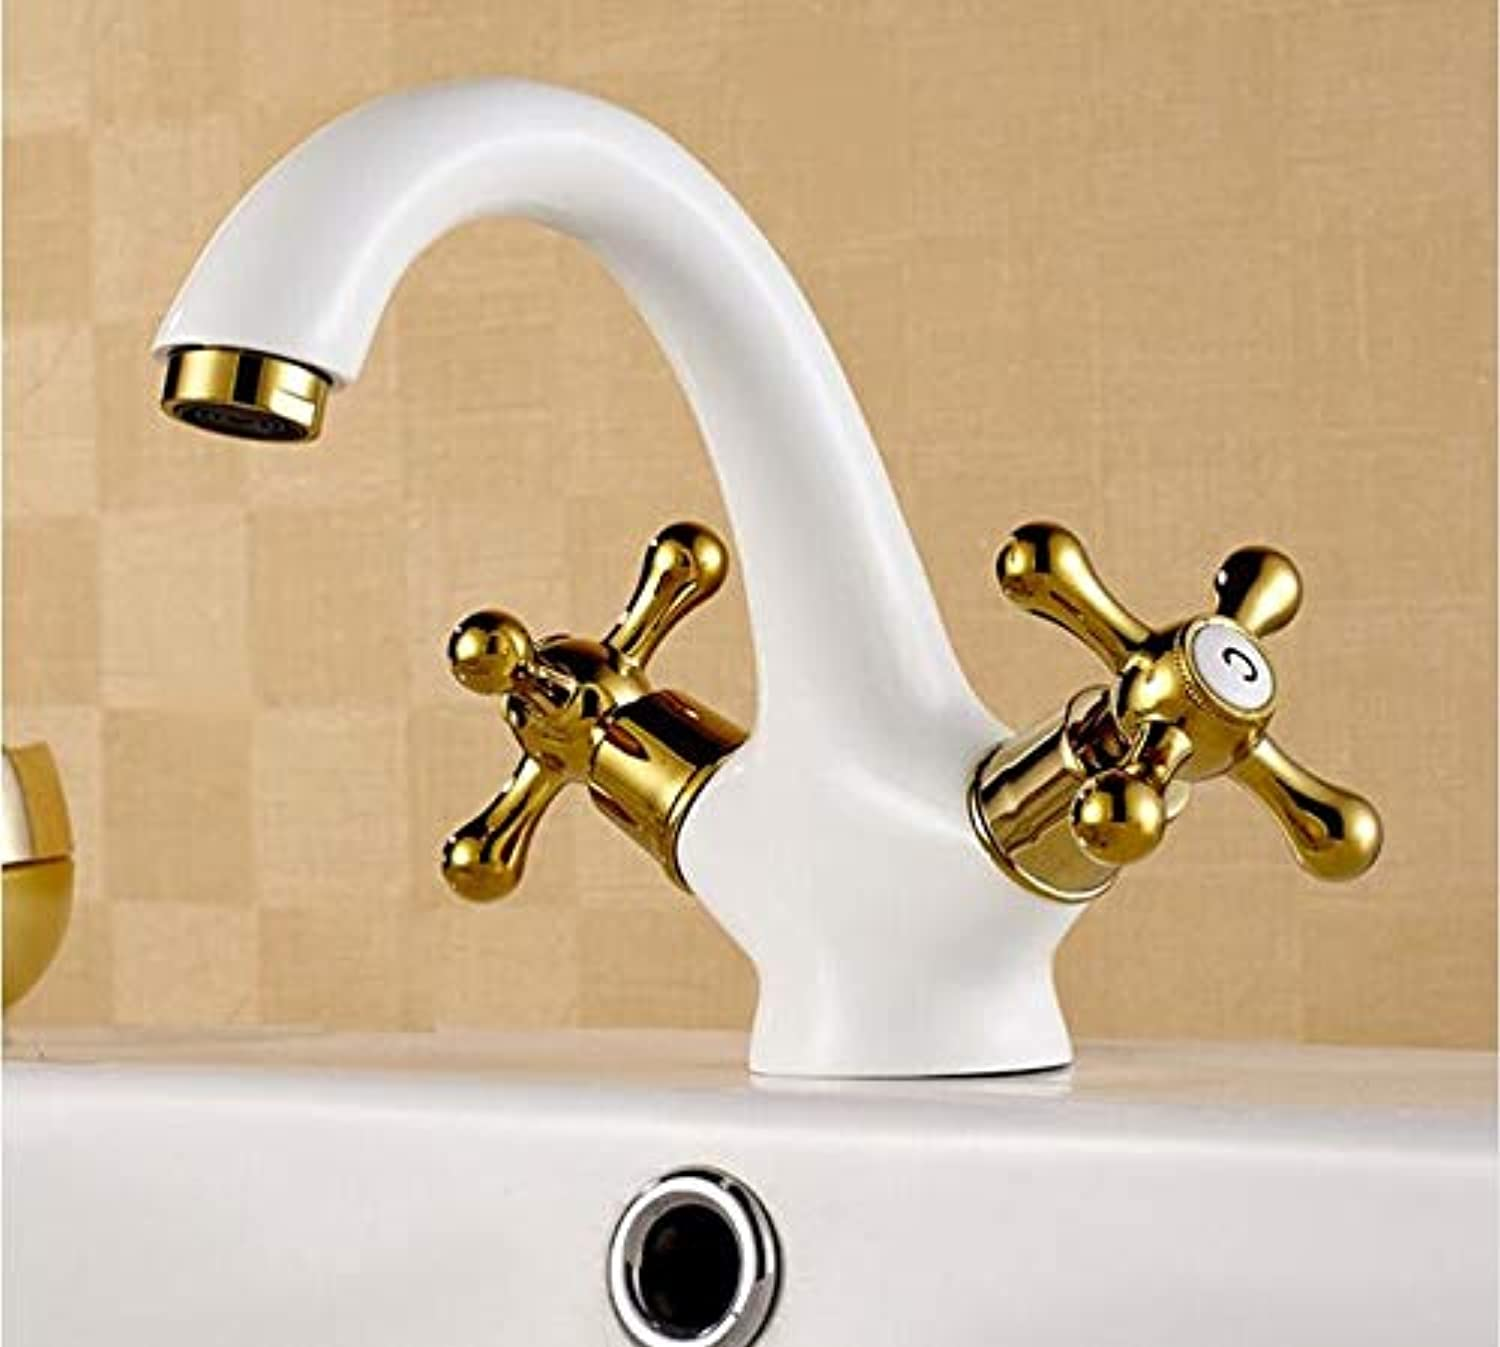 Makej New Arrival European Antique gold Plated White Faucet Basin Sink Universal Double Handle Hot and Cold Mixer Bathroom Taps